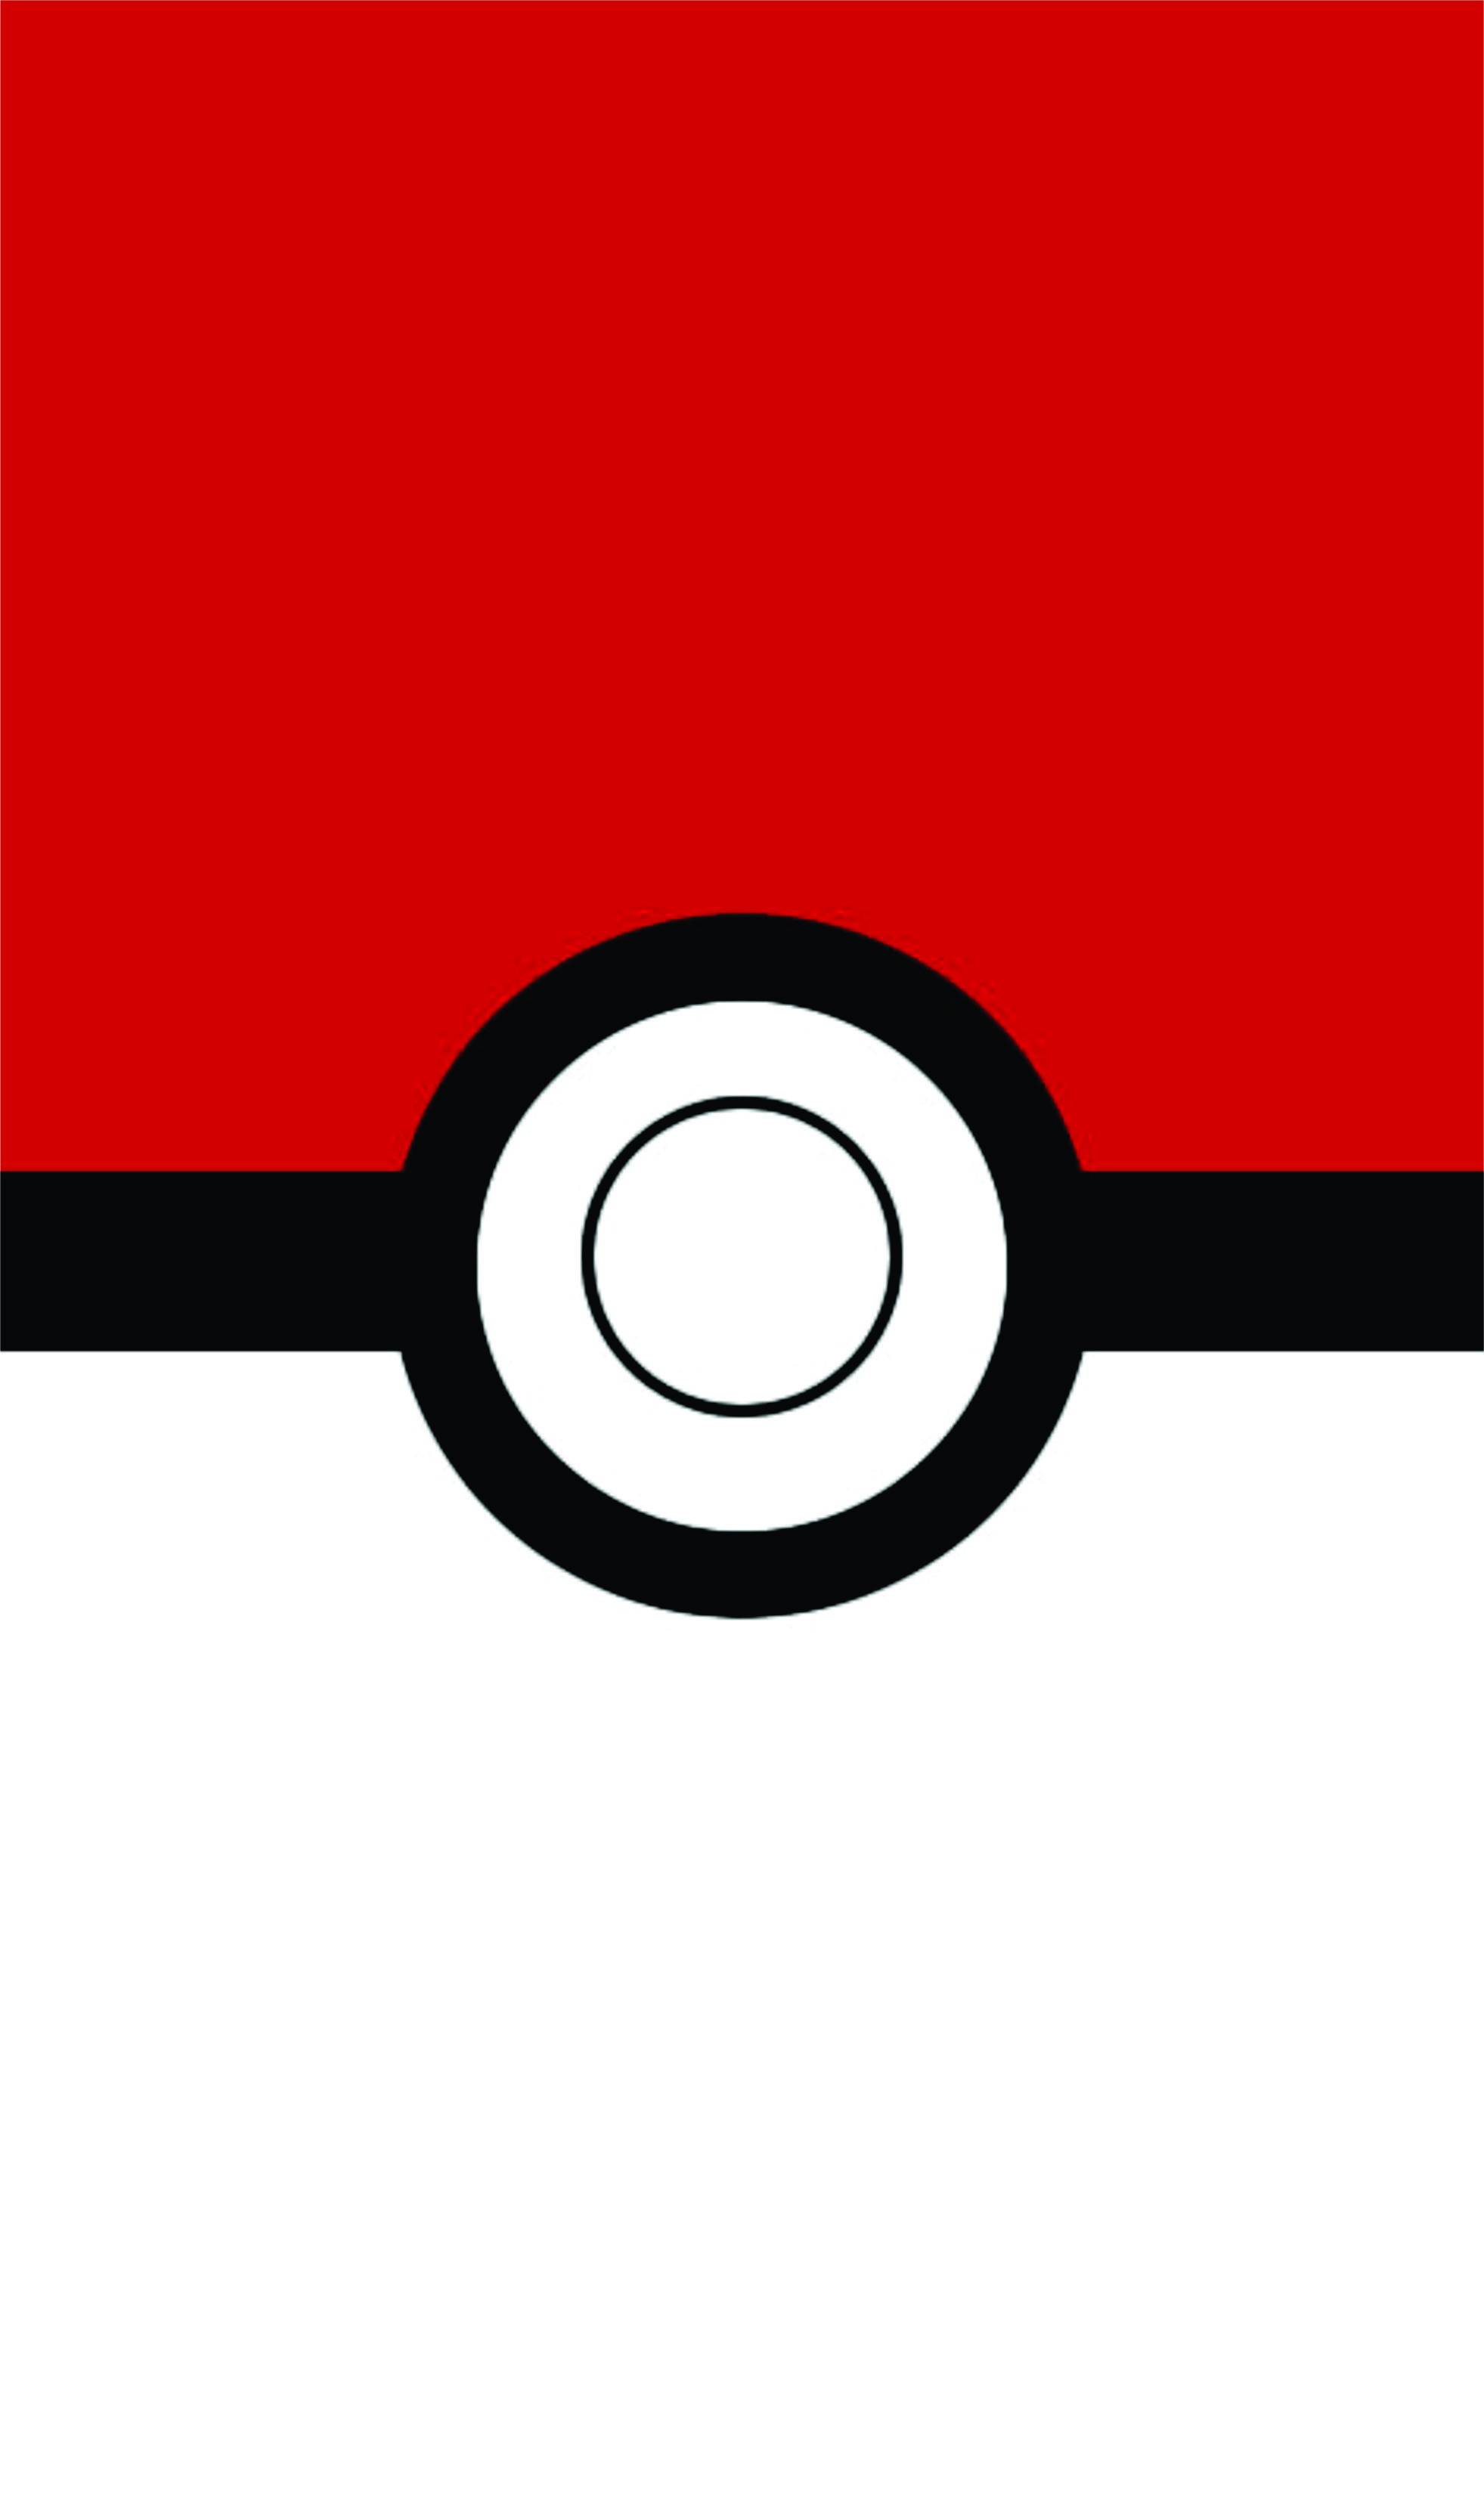 pokemon pokeball backgrounds wwwpixsharkcom images